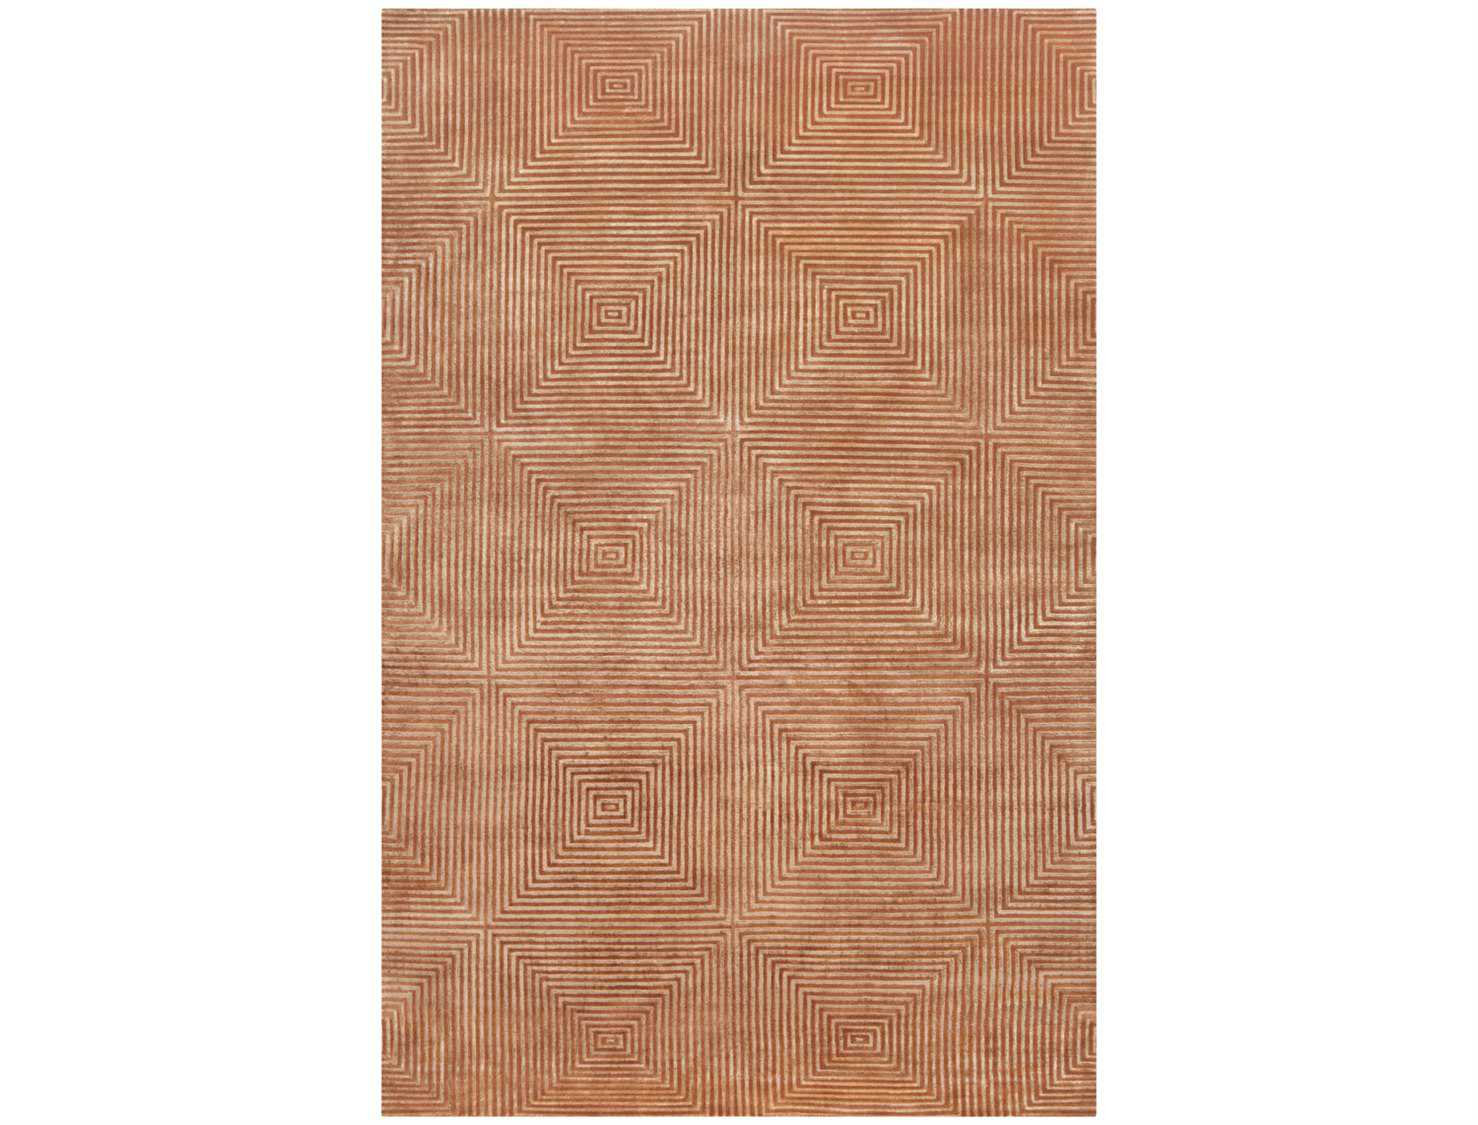 Surya candice olson luminous rectangular orange area rug for Candice olson area rugs